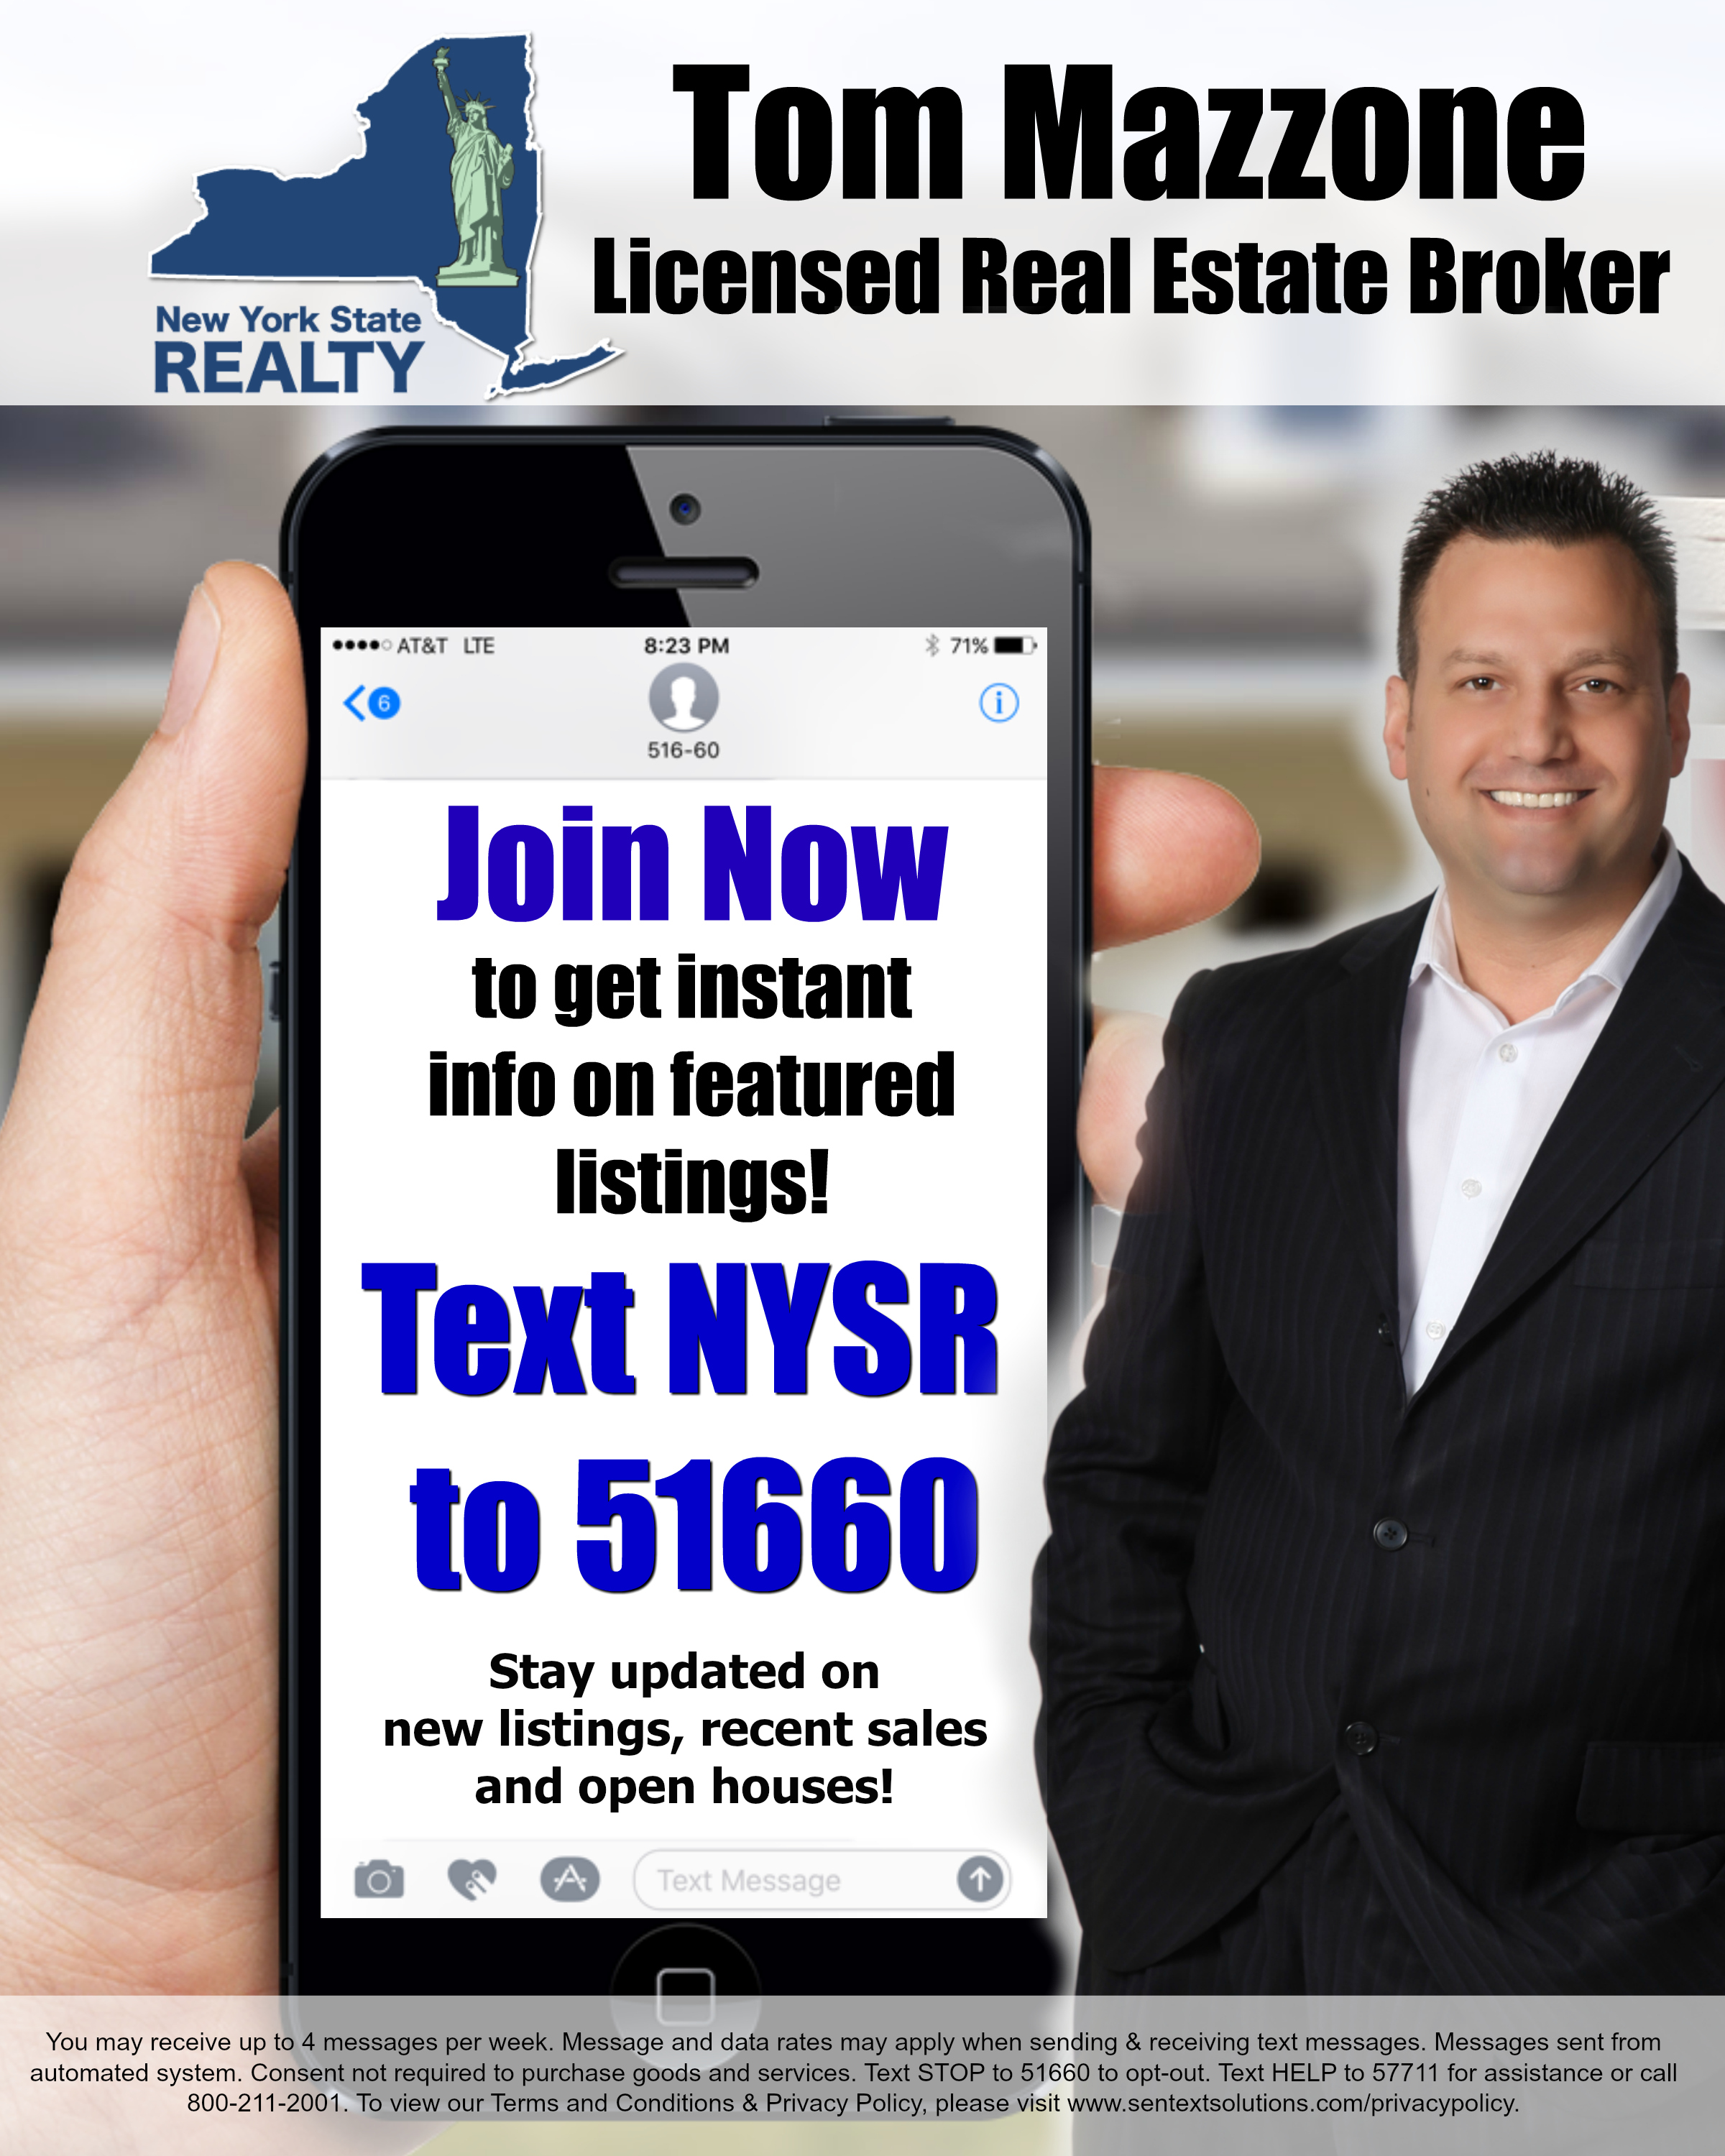 NYSR New York State Realty